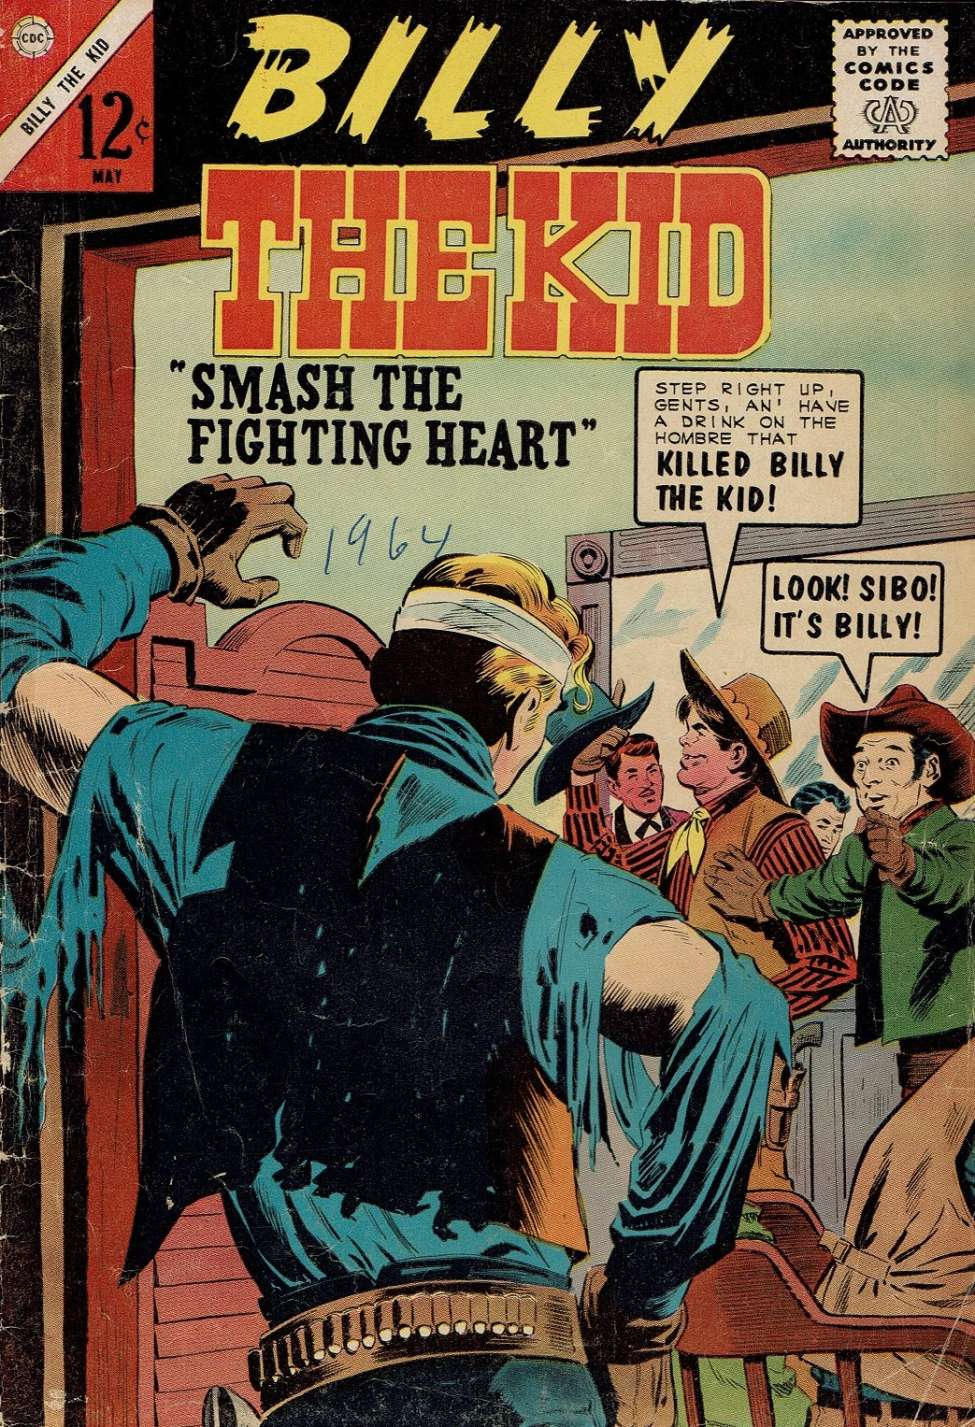 Comic Book Cover For Billy the Kid #45